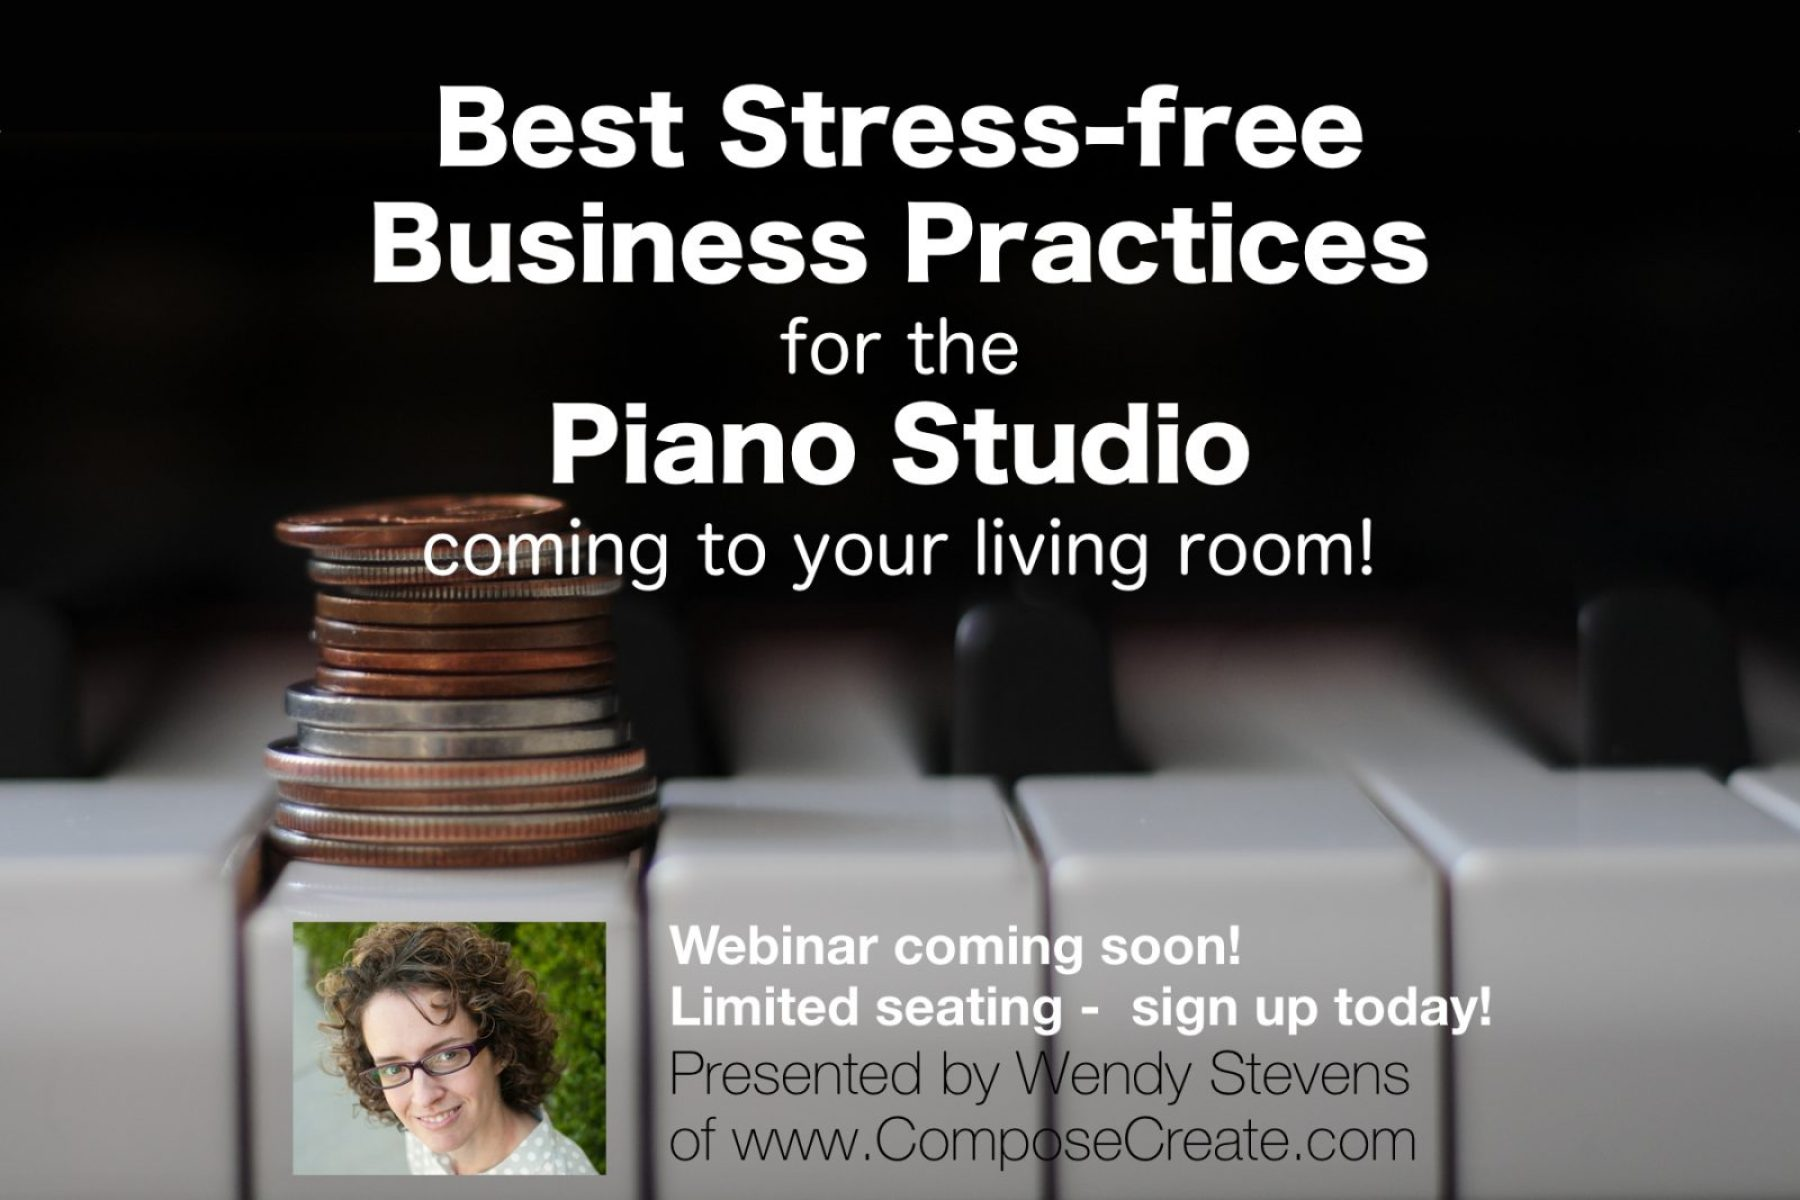 Best stress-free business practices for your studio | Webinar by Wendy Stevens